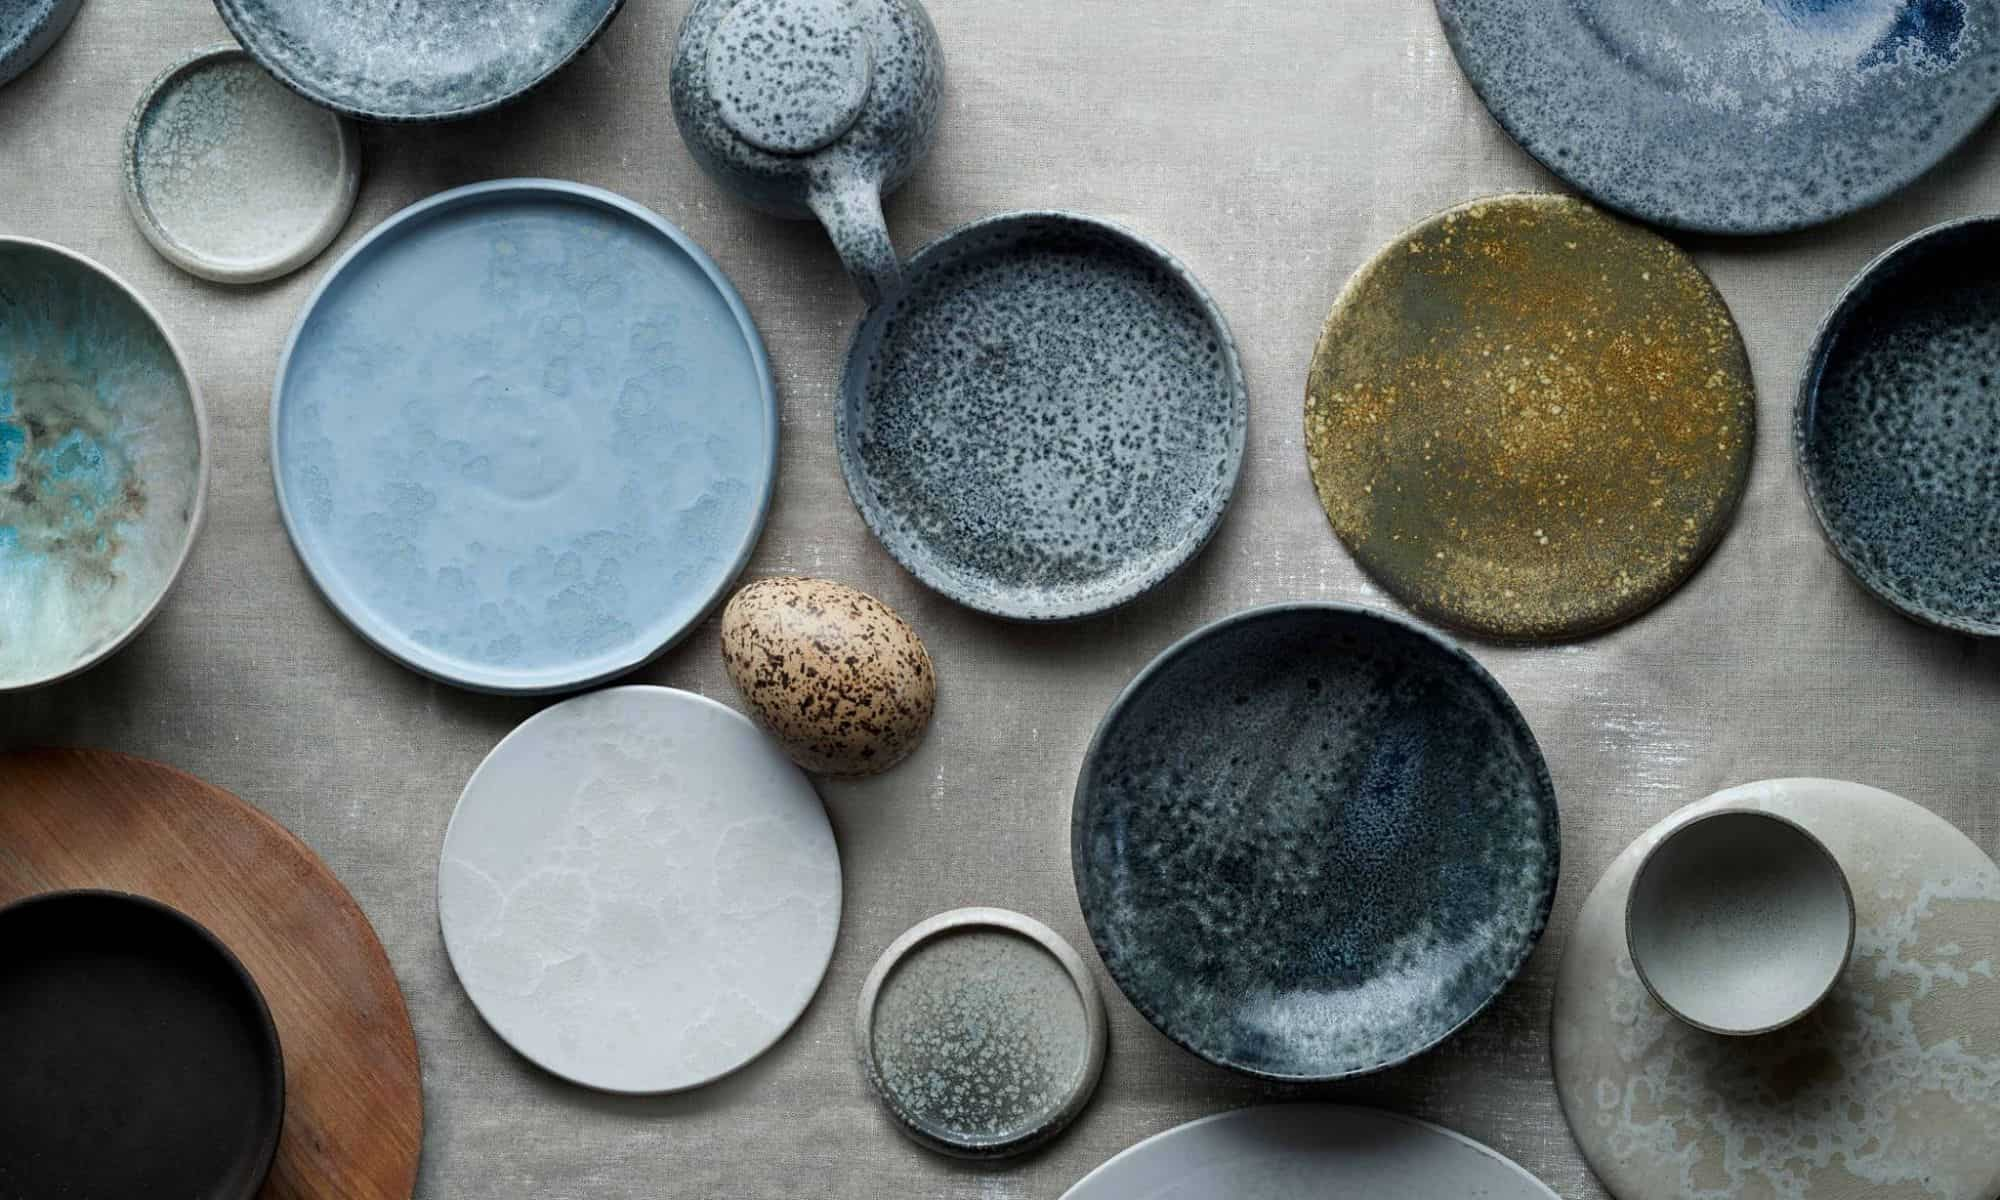 Bird's eye view of rustic plates of different shades of grey